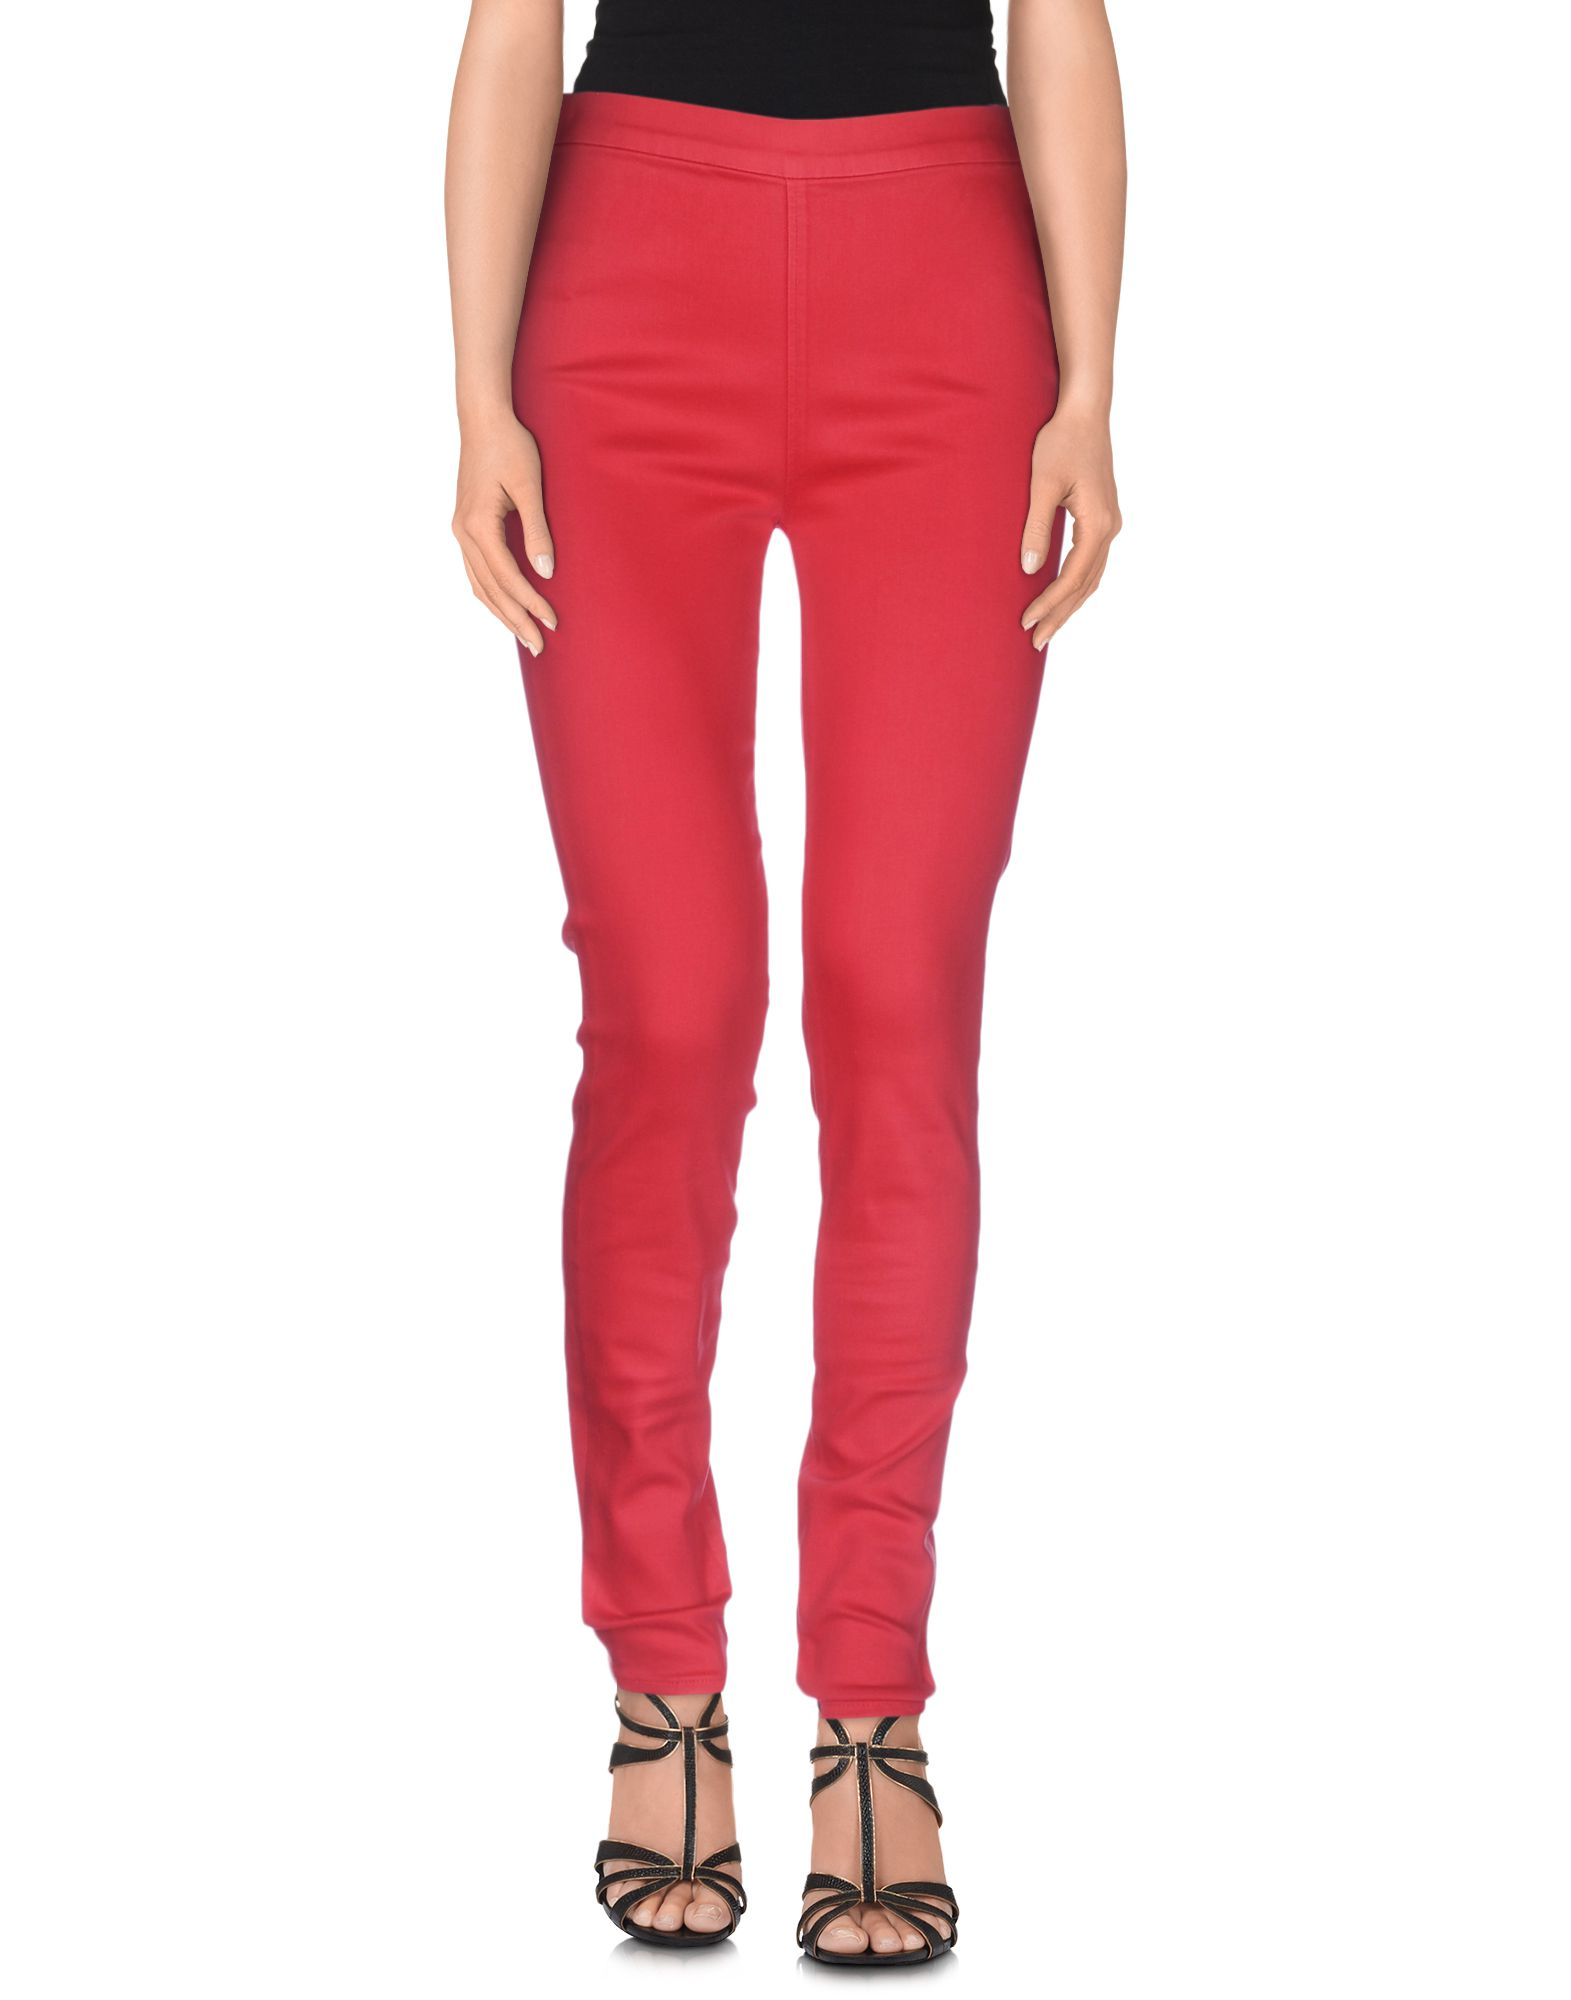 GIAMBATTISTA VALLI FOR 7 FOR ALL MANKIND Jeans